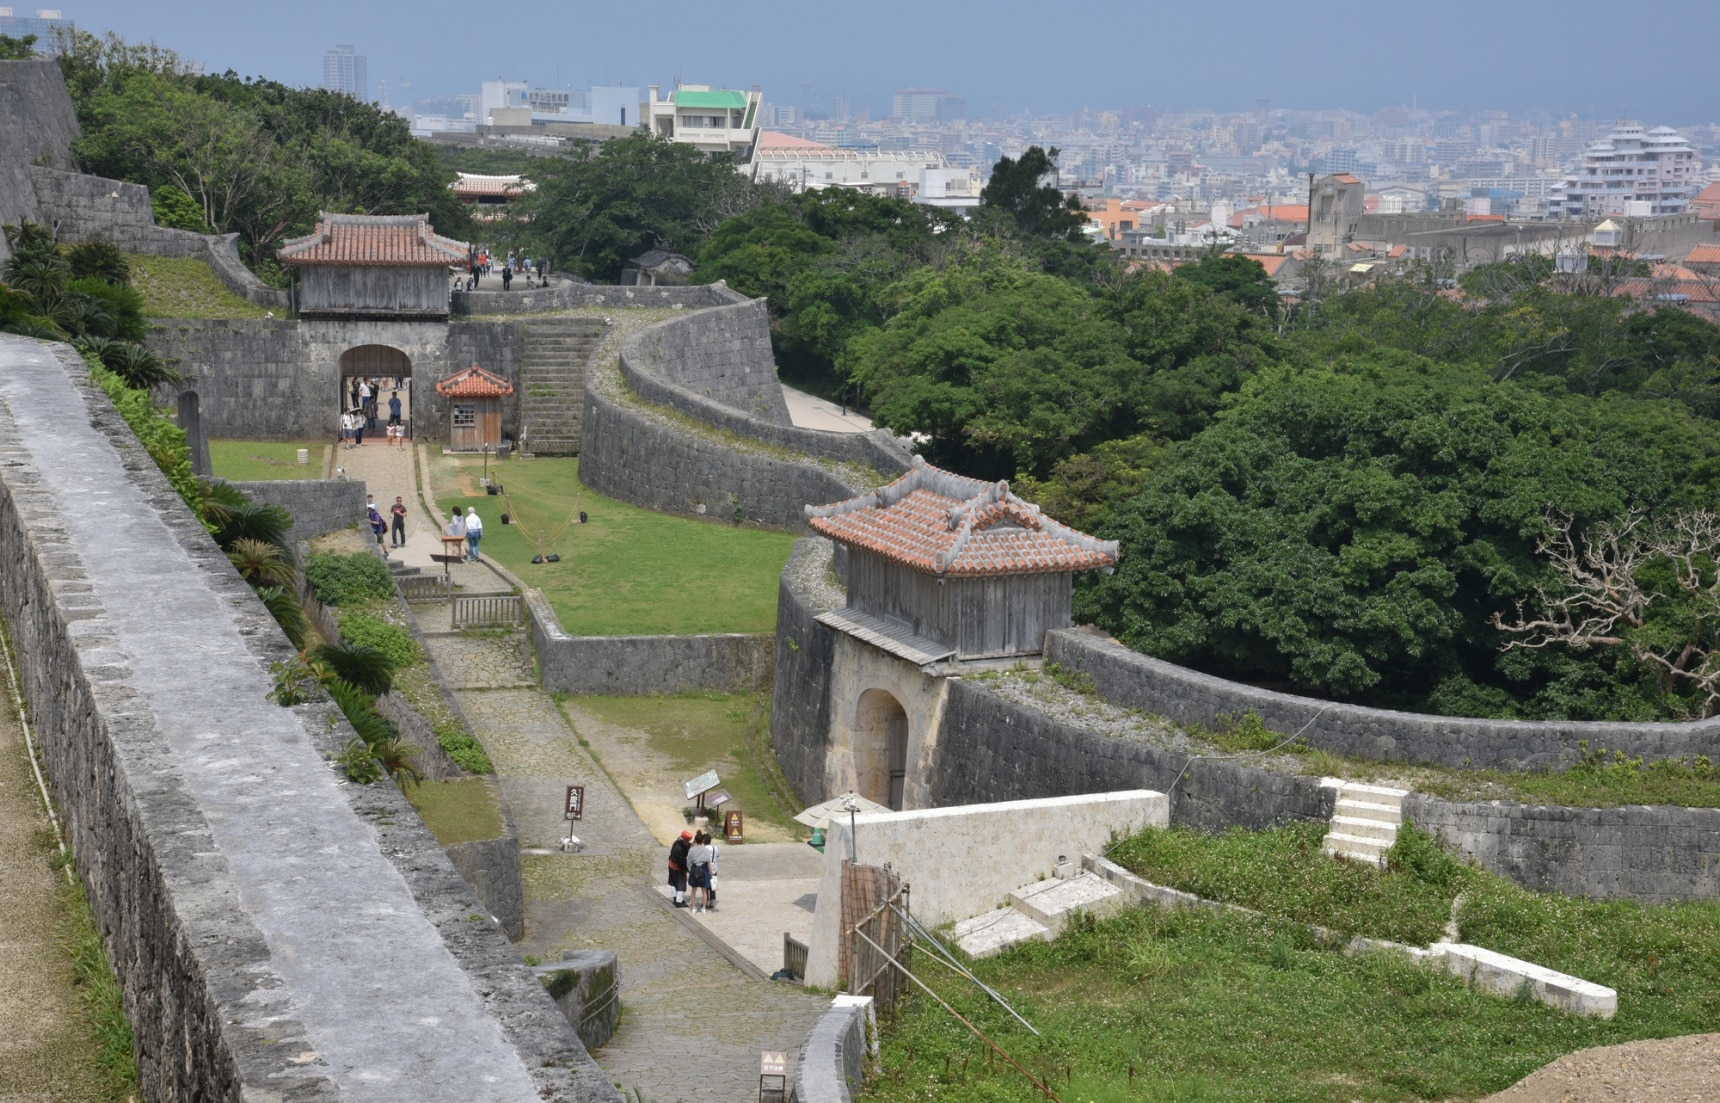 The 5 Castles of Okinawa